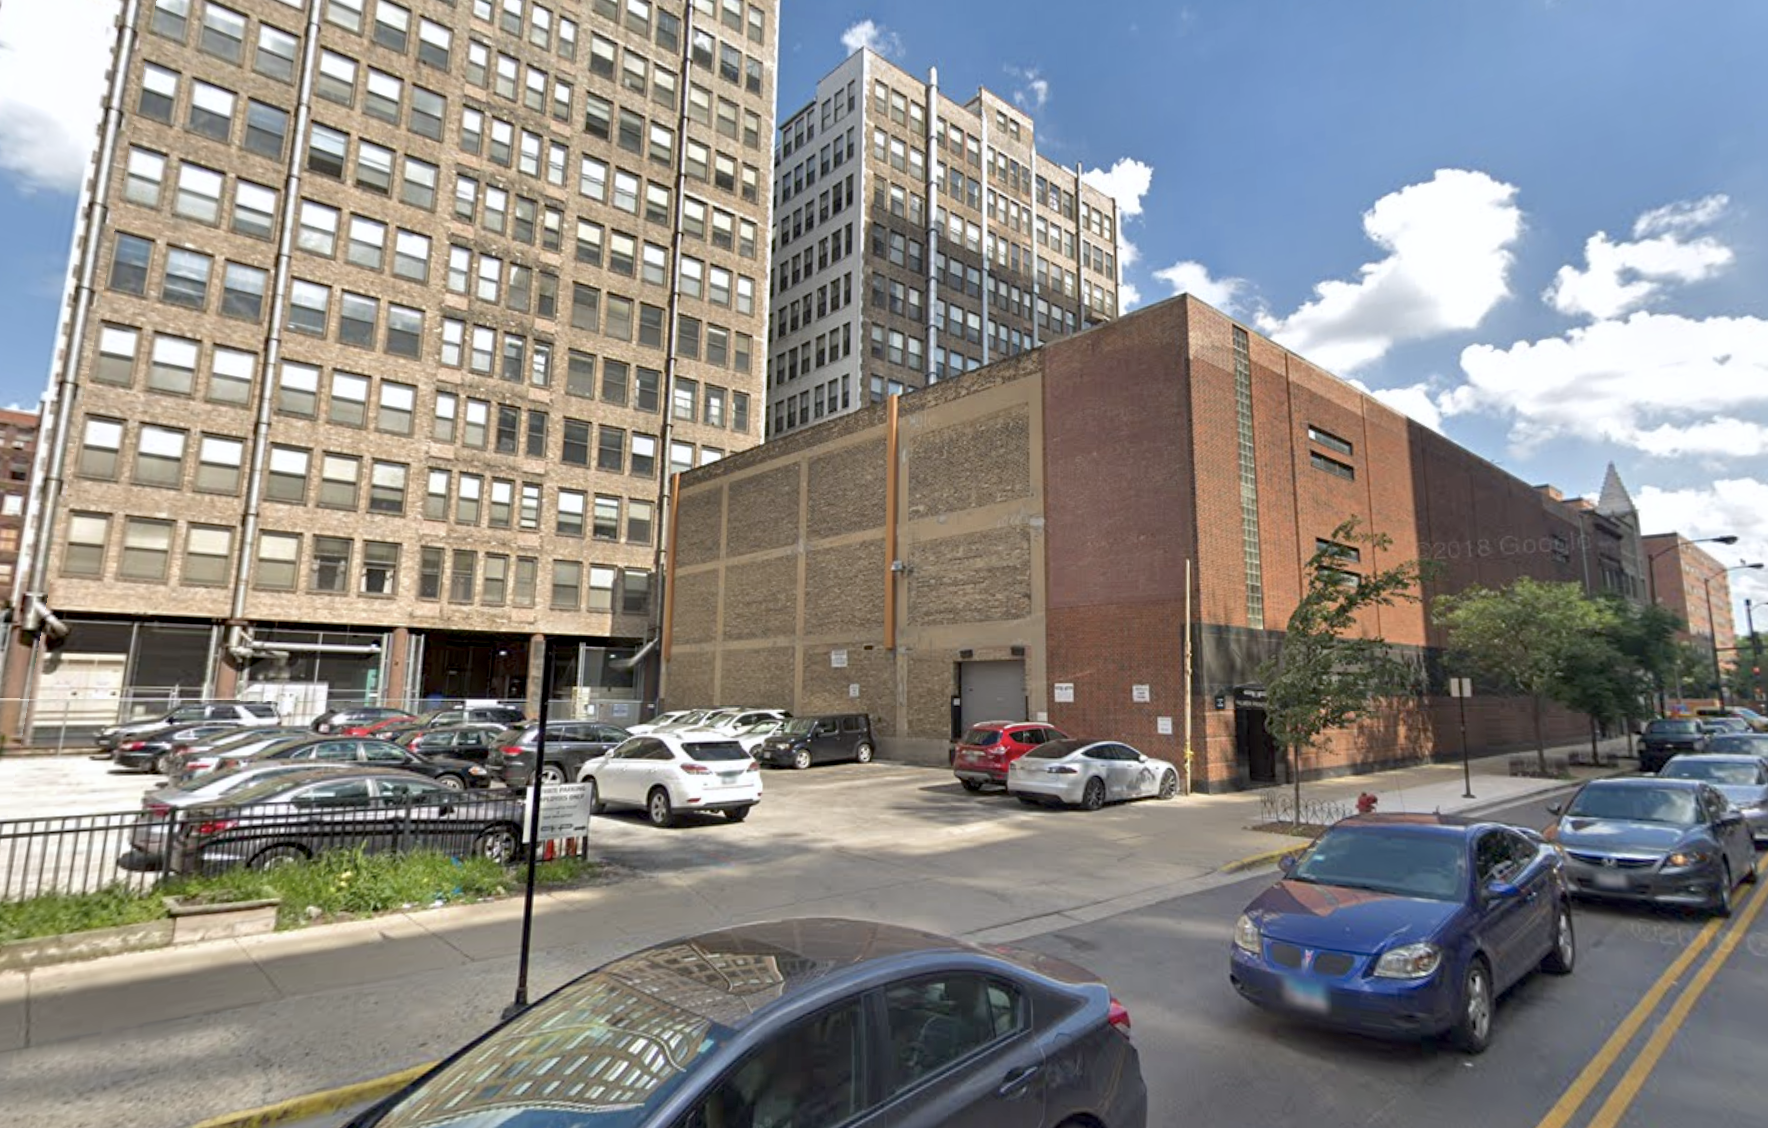 Glassy 29-story apartment tower looks to make a splash along Printer's Row